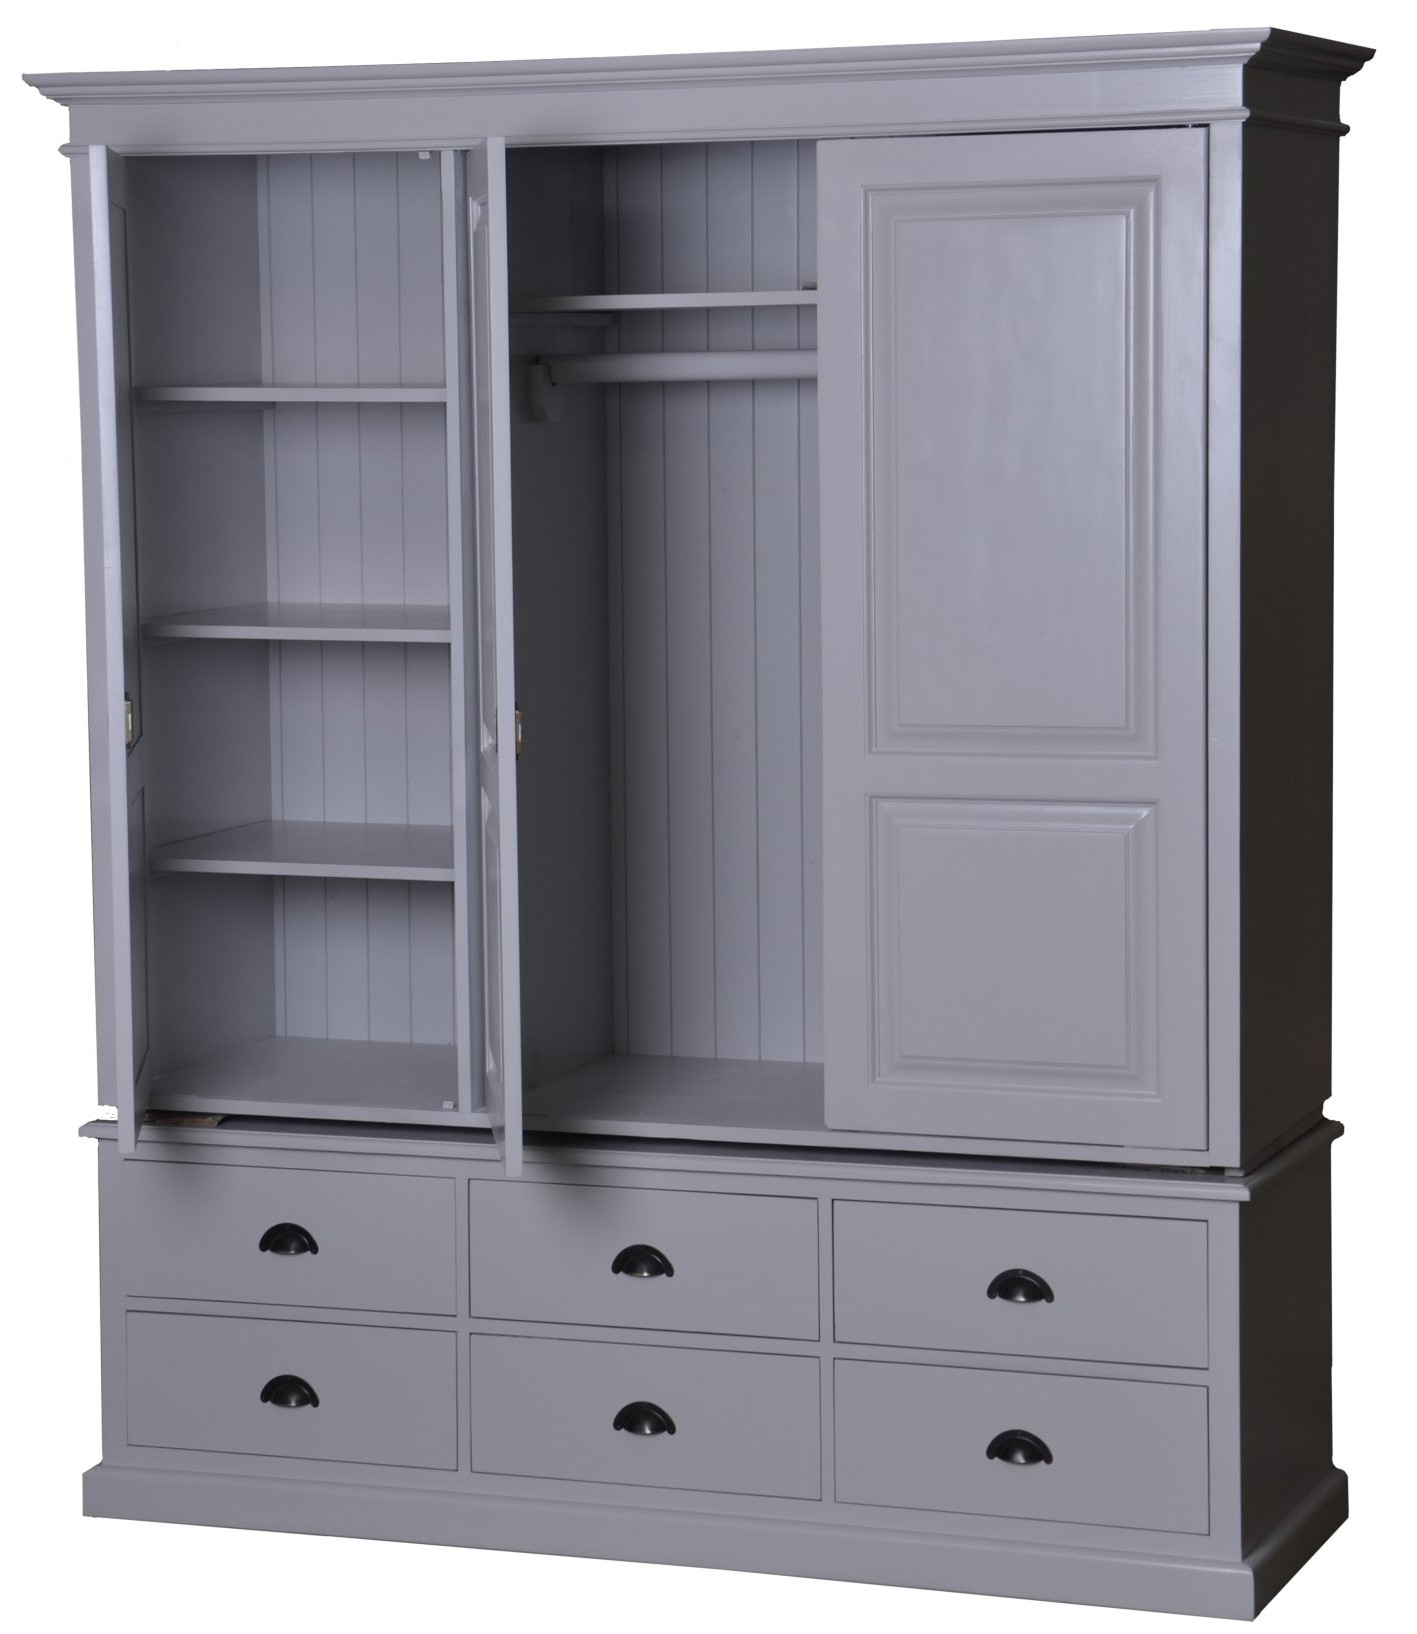 armoire fer great meuble industriel vintage dedans meuble. Black Bedroom Furniture Sets. Home Design Ideas